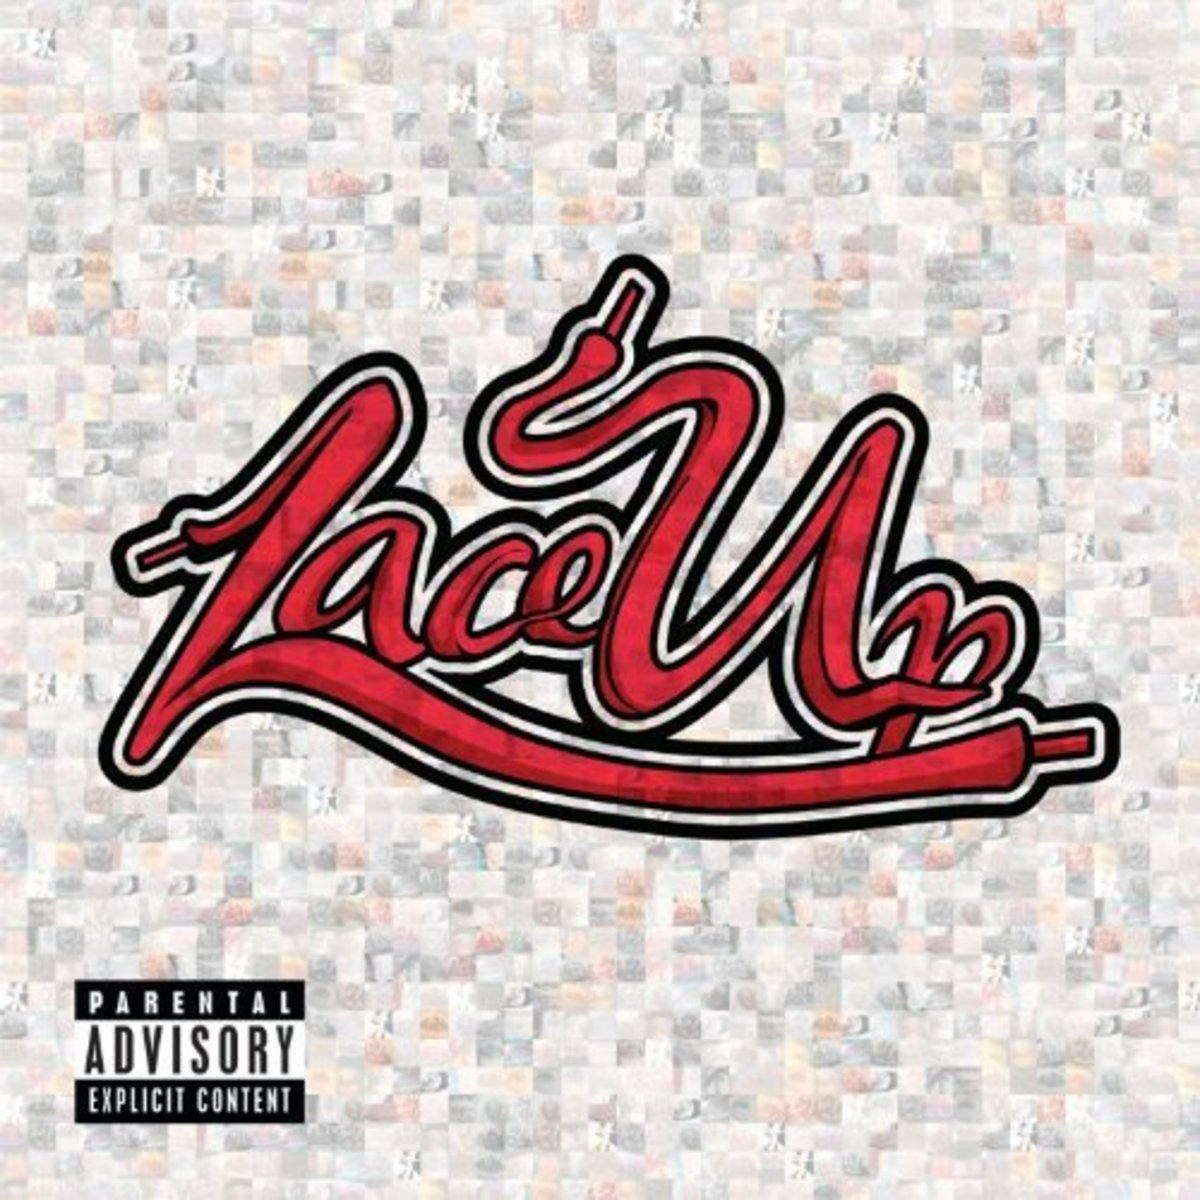 mgk-lace-up.jpg